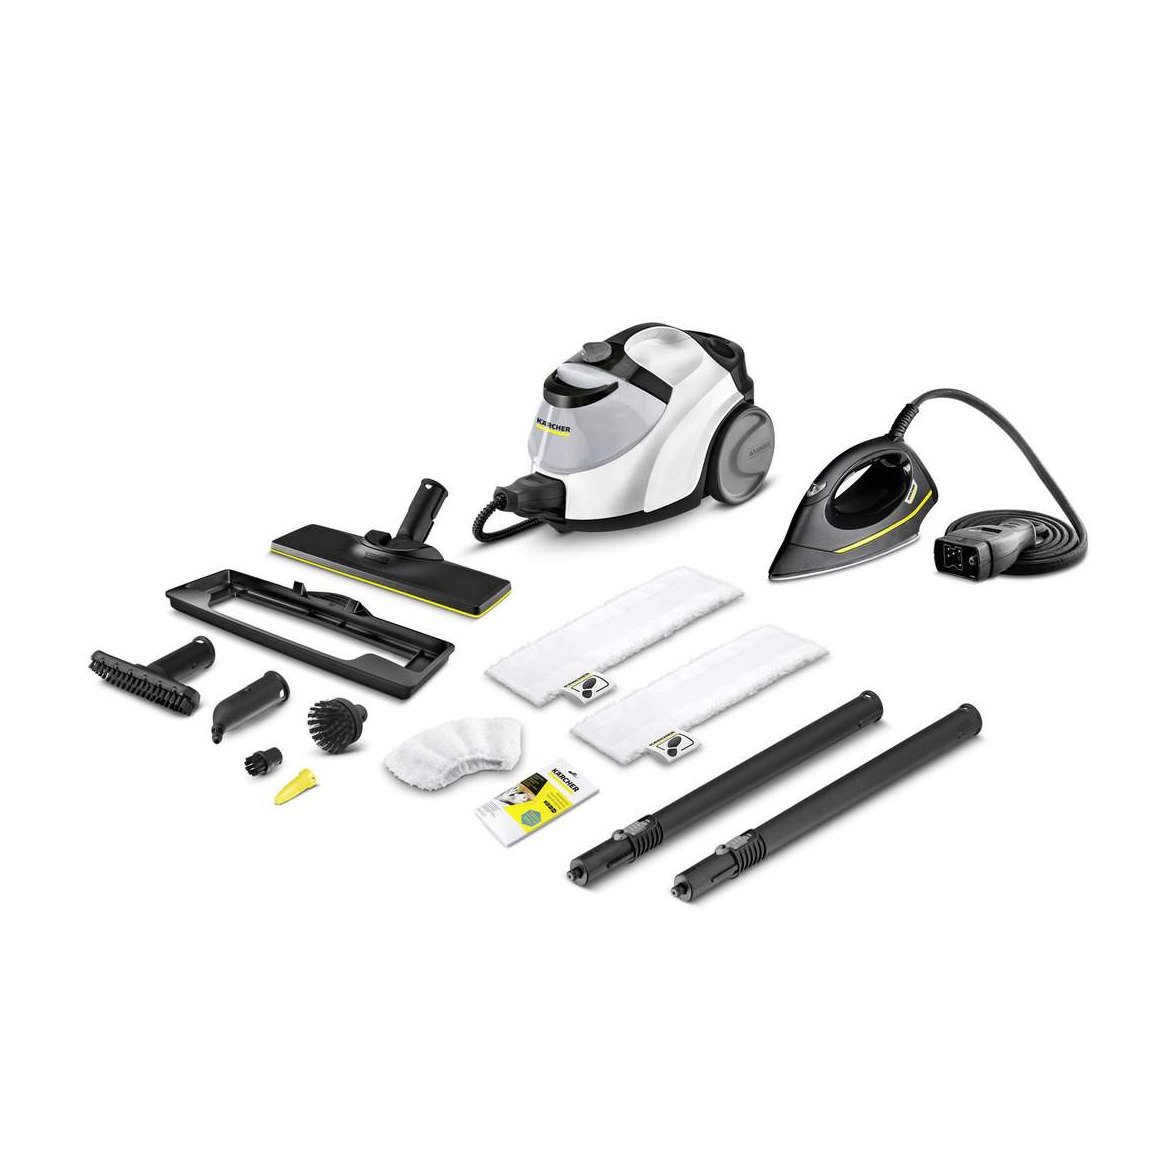 SC 5 PREMIUM IRON KIT (WHITE)